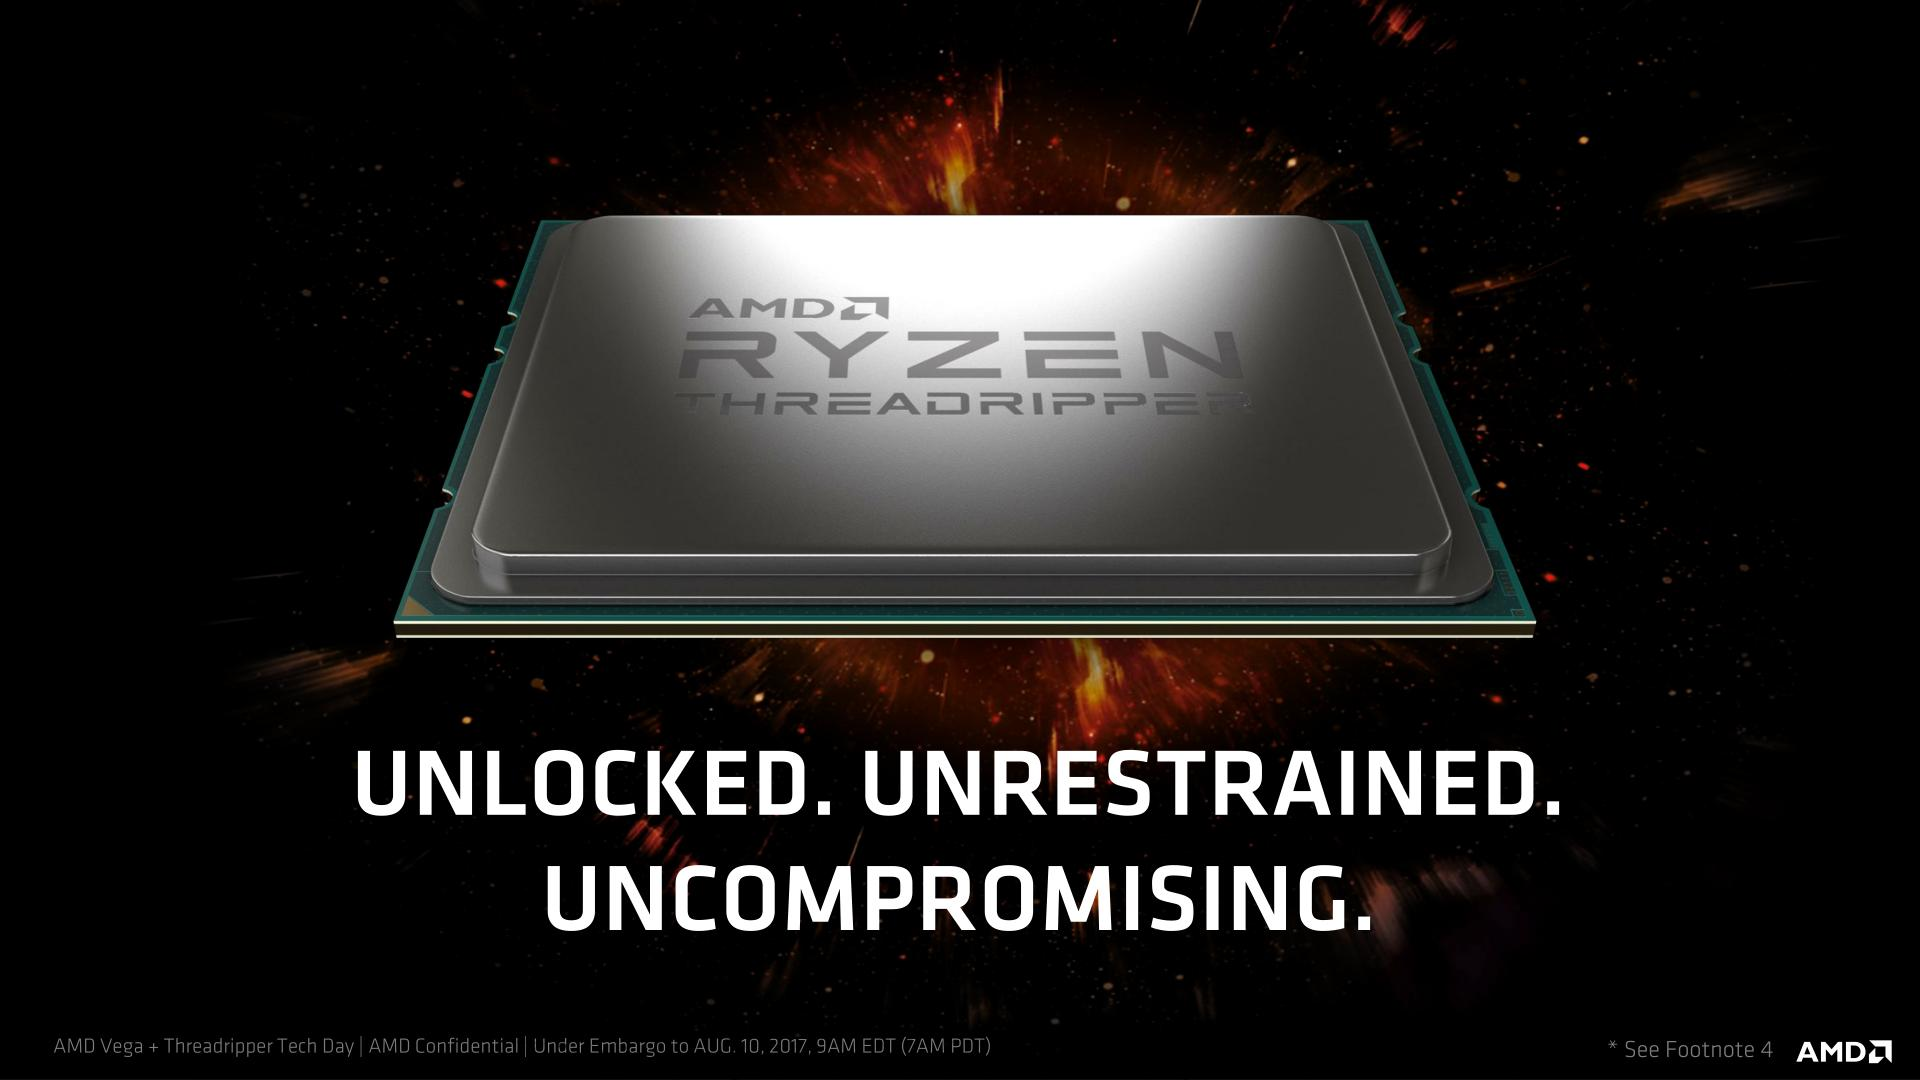 Ryzen Threadripper 2990WX for when 31 cores isn't enough cores.